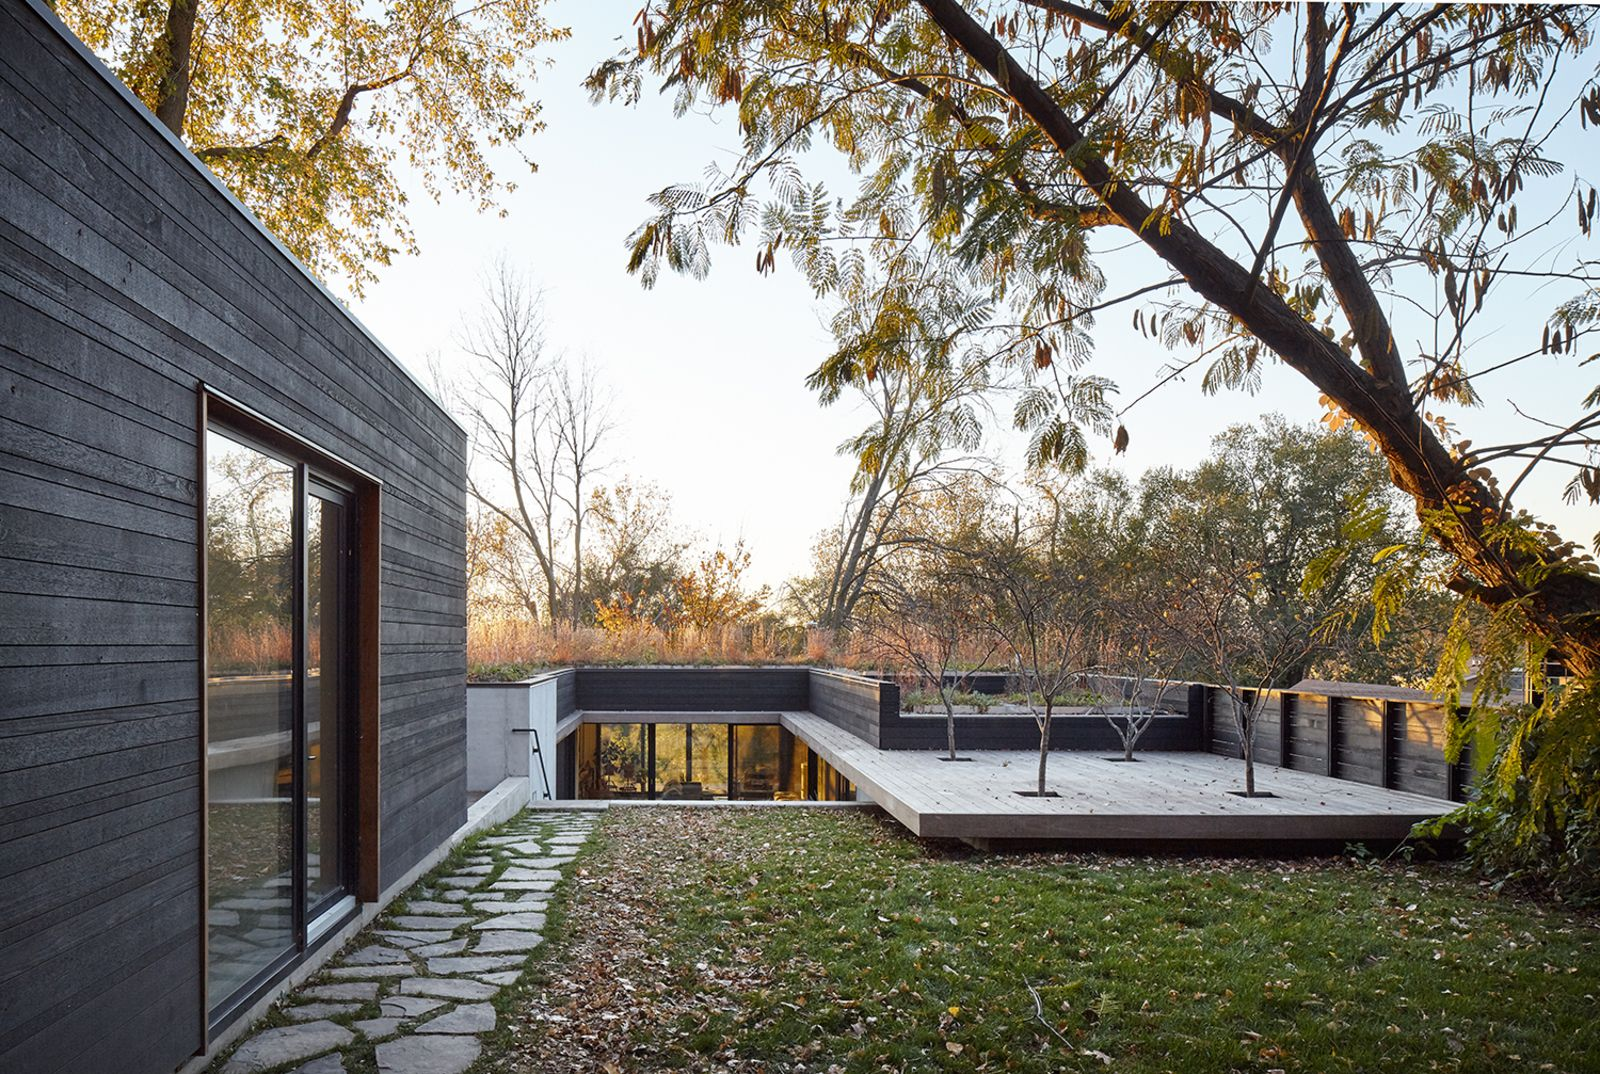 Nature Reigns Supreme at a Verdant Kansas City Home in